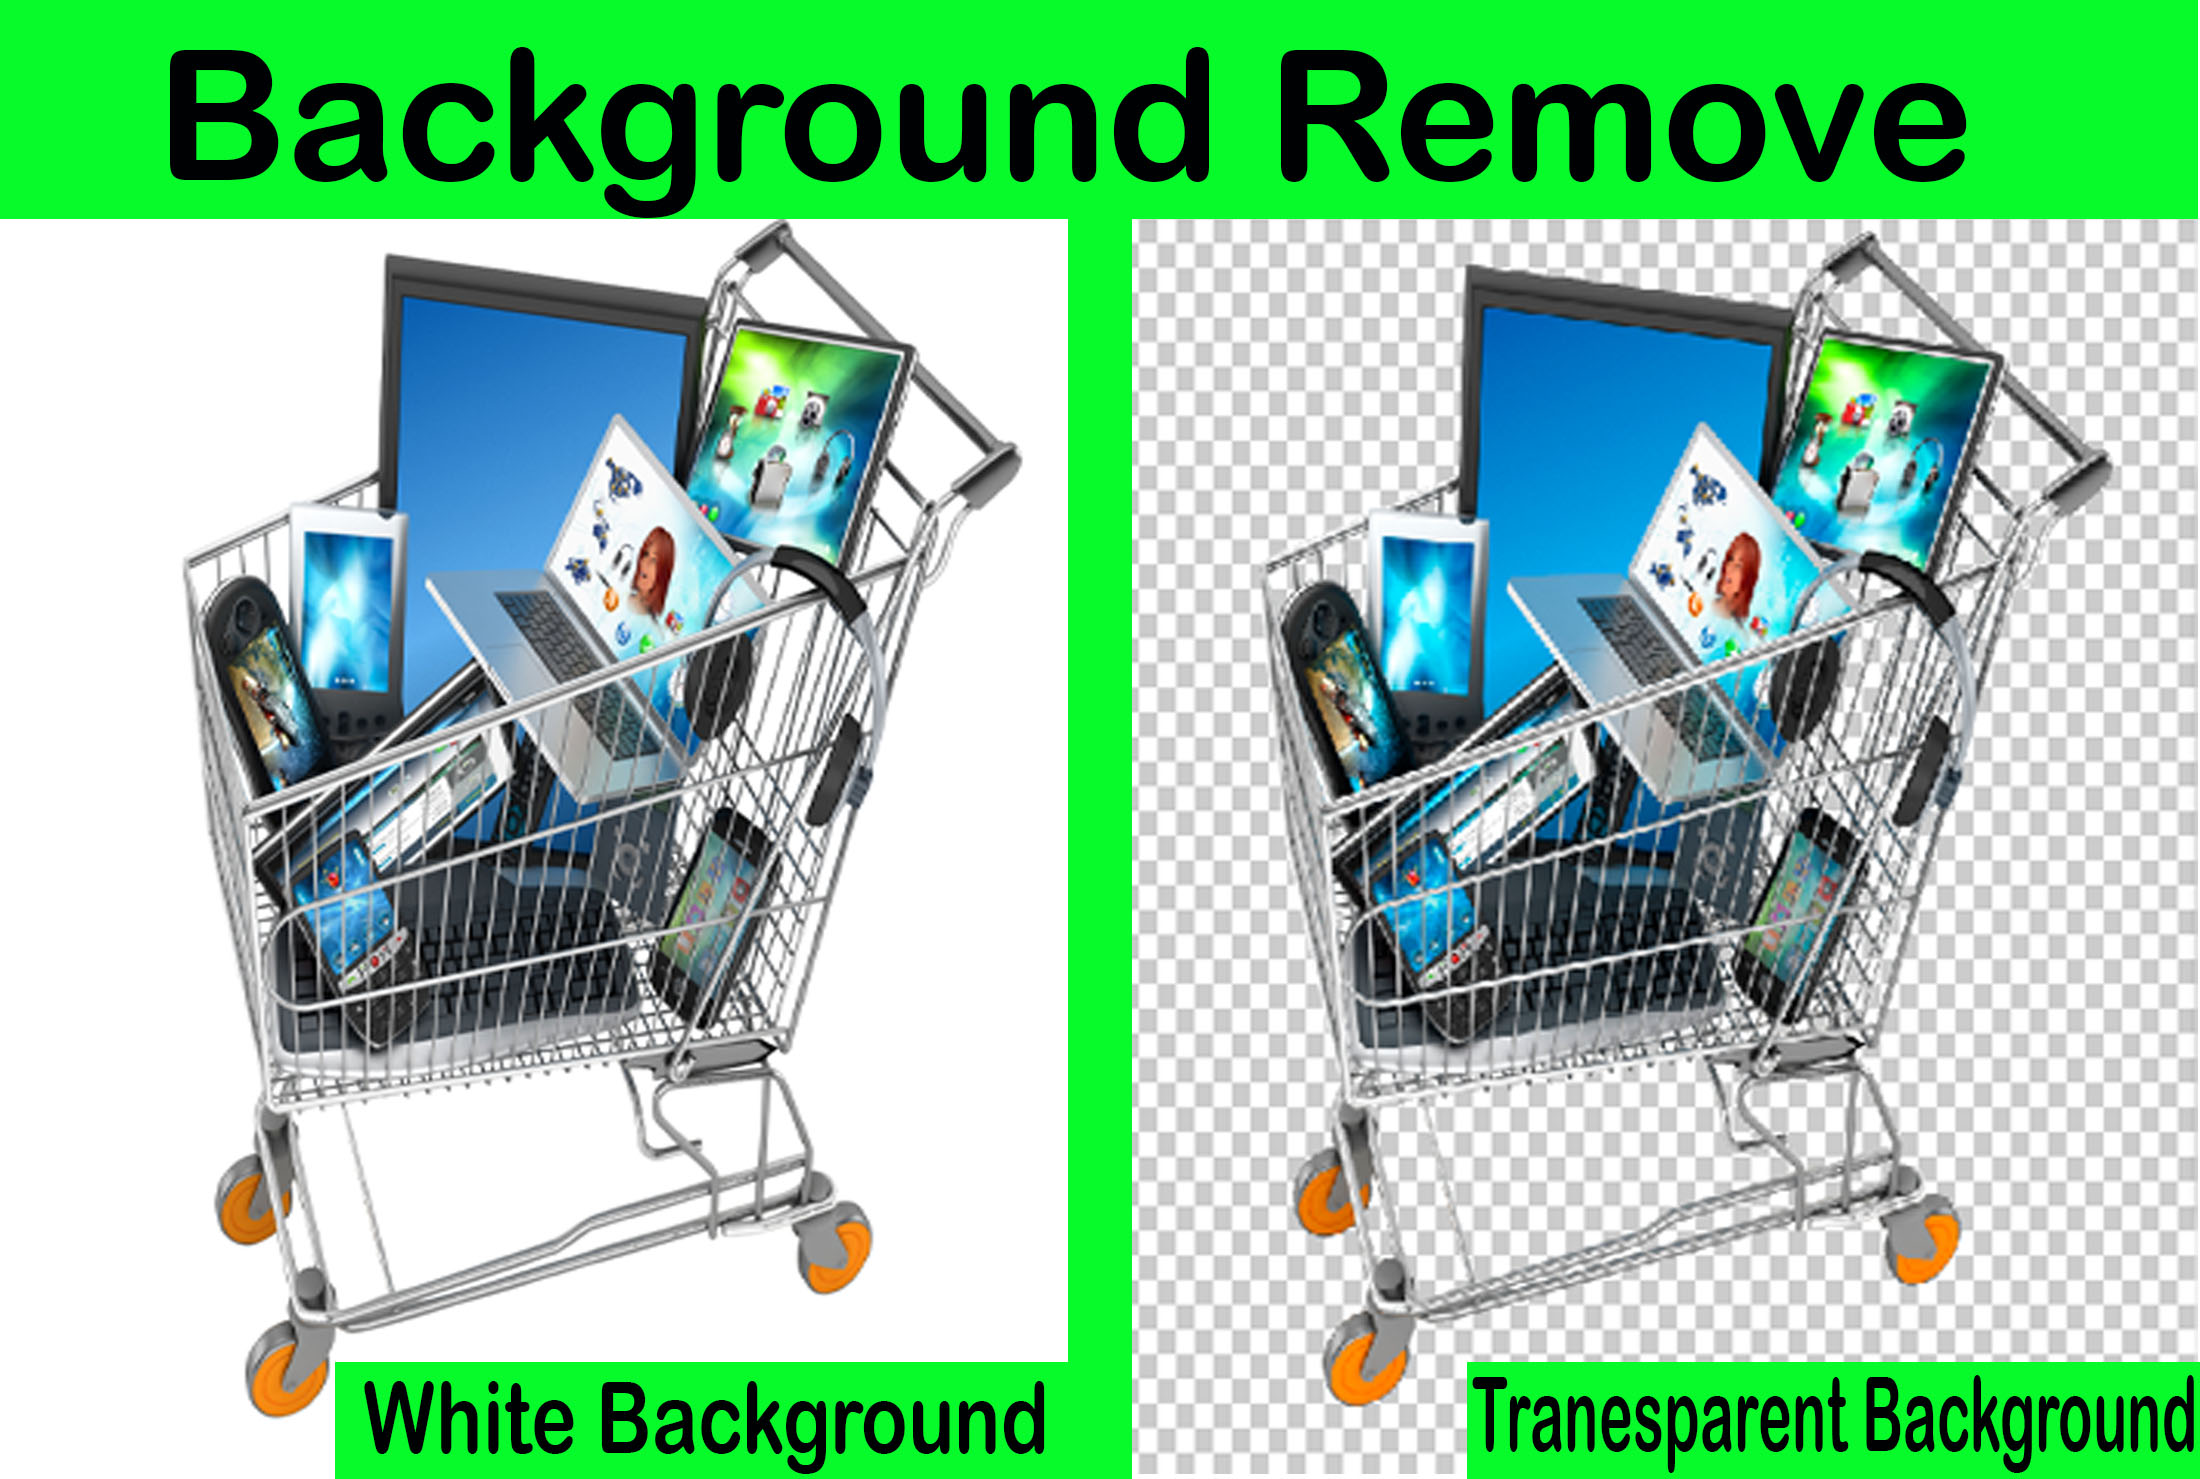 I will do any product image background remove professionally